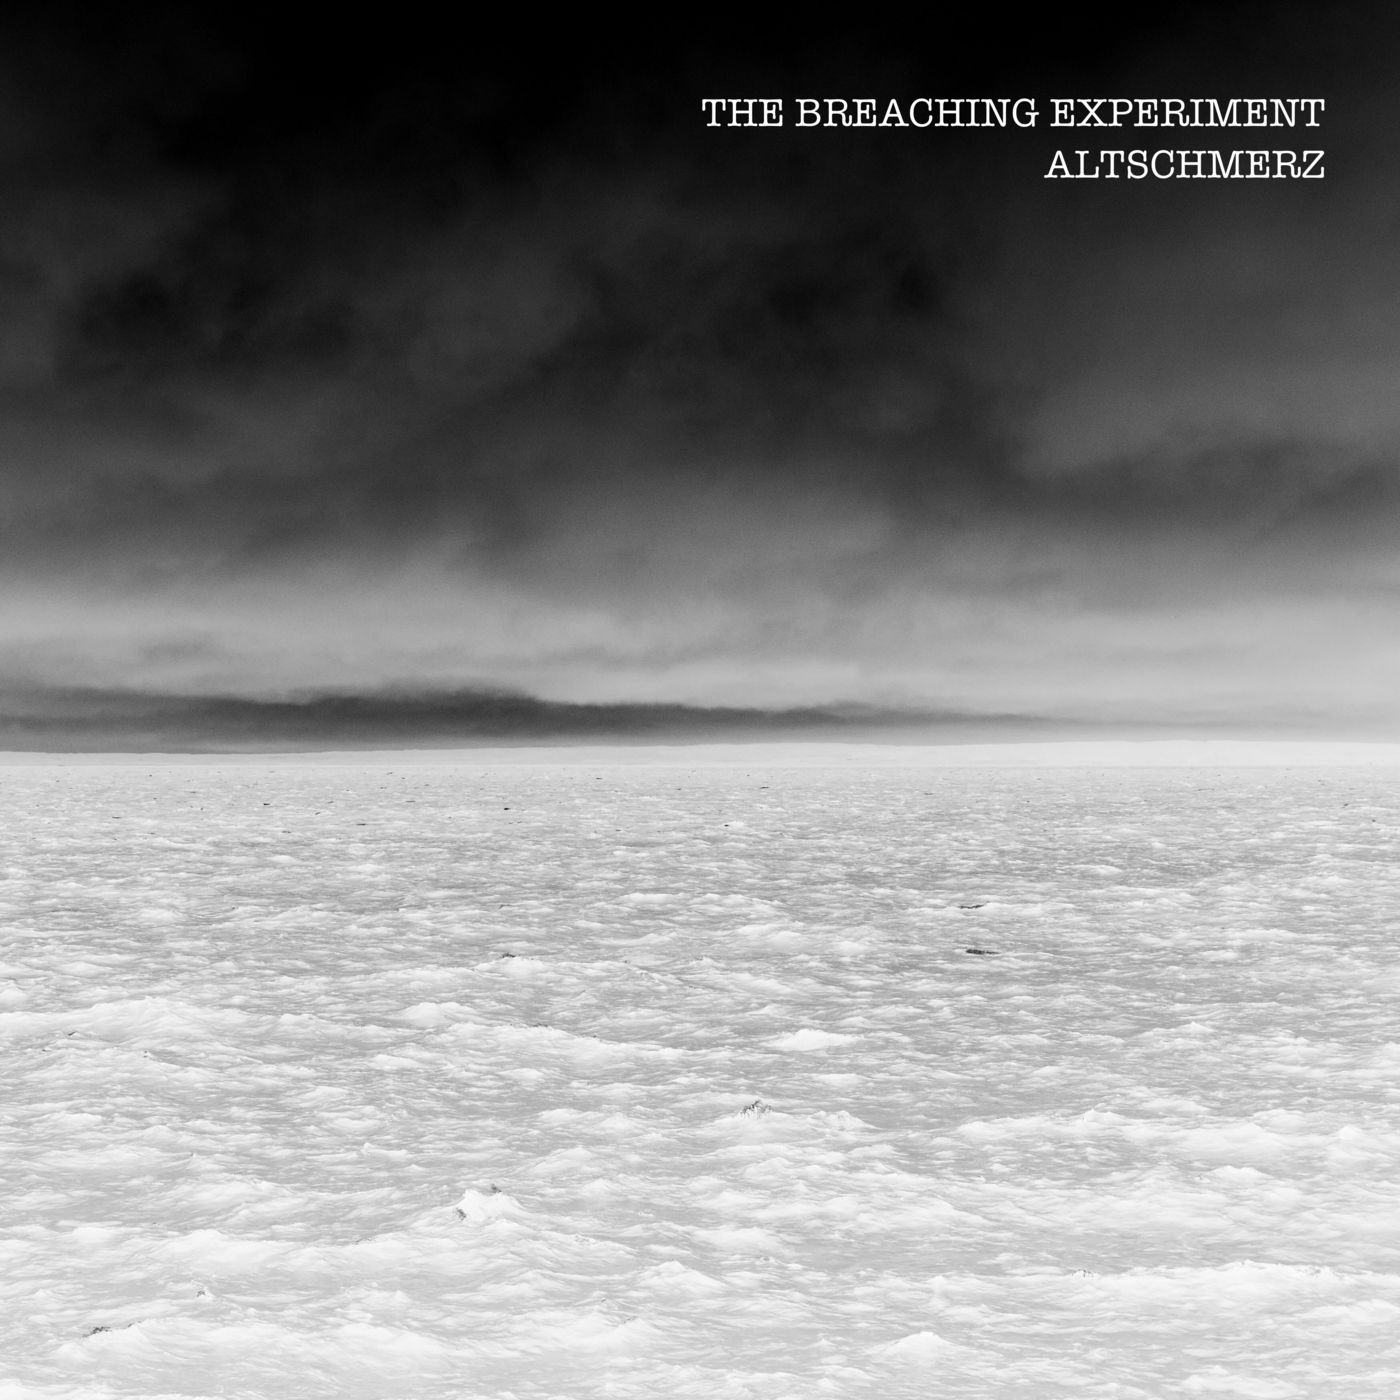 The Breaching Experiment – Altschmerz (2020)